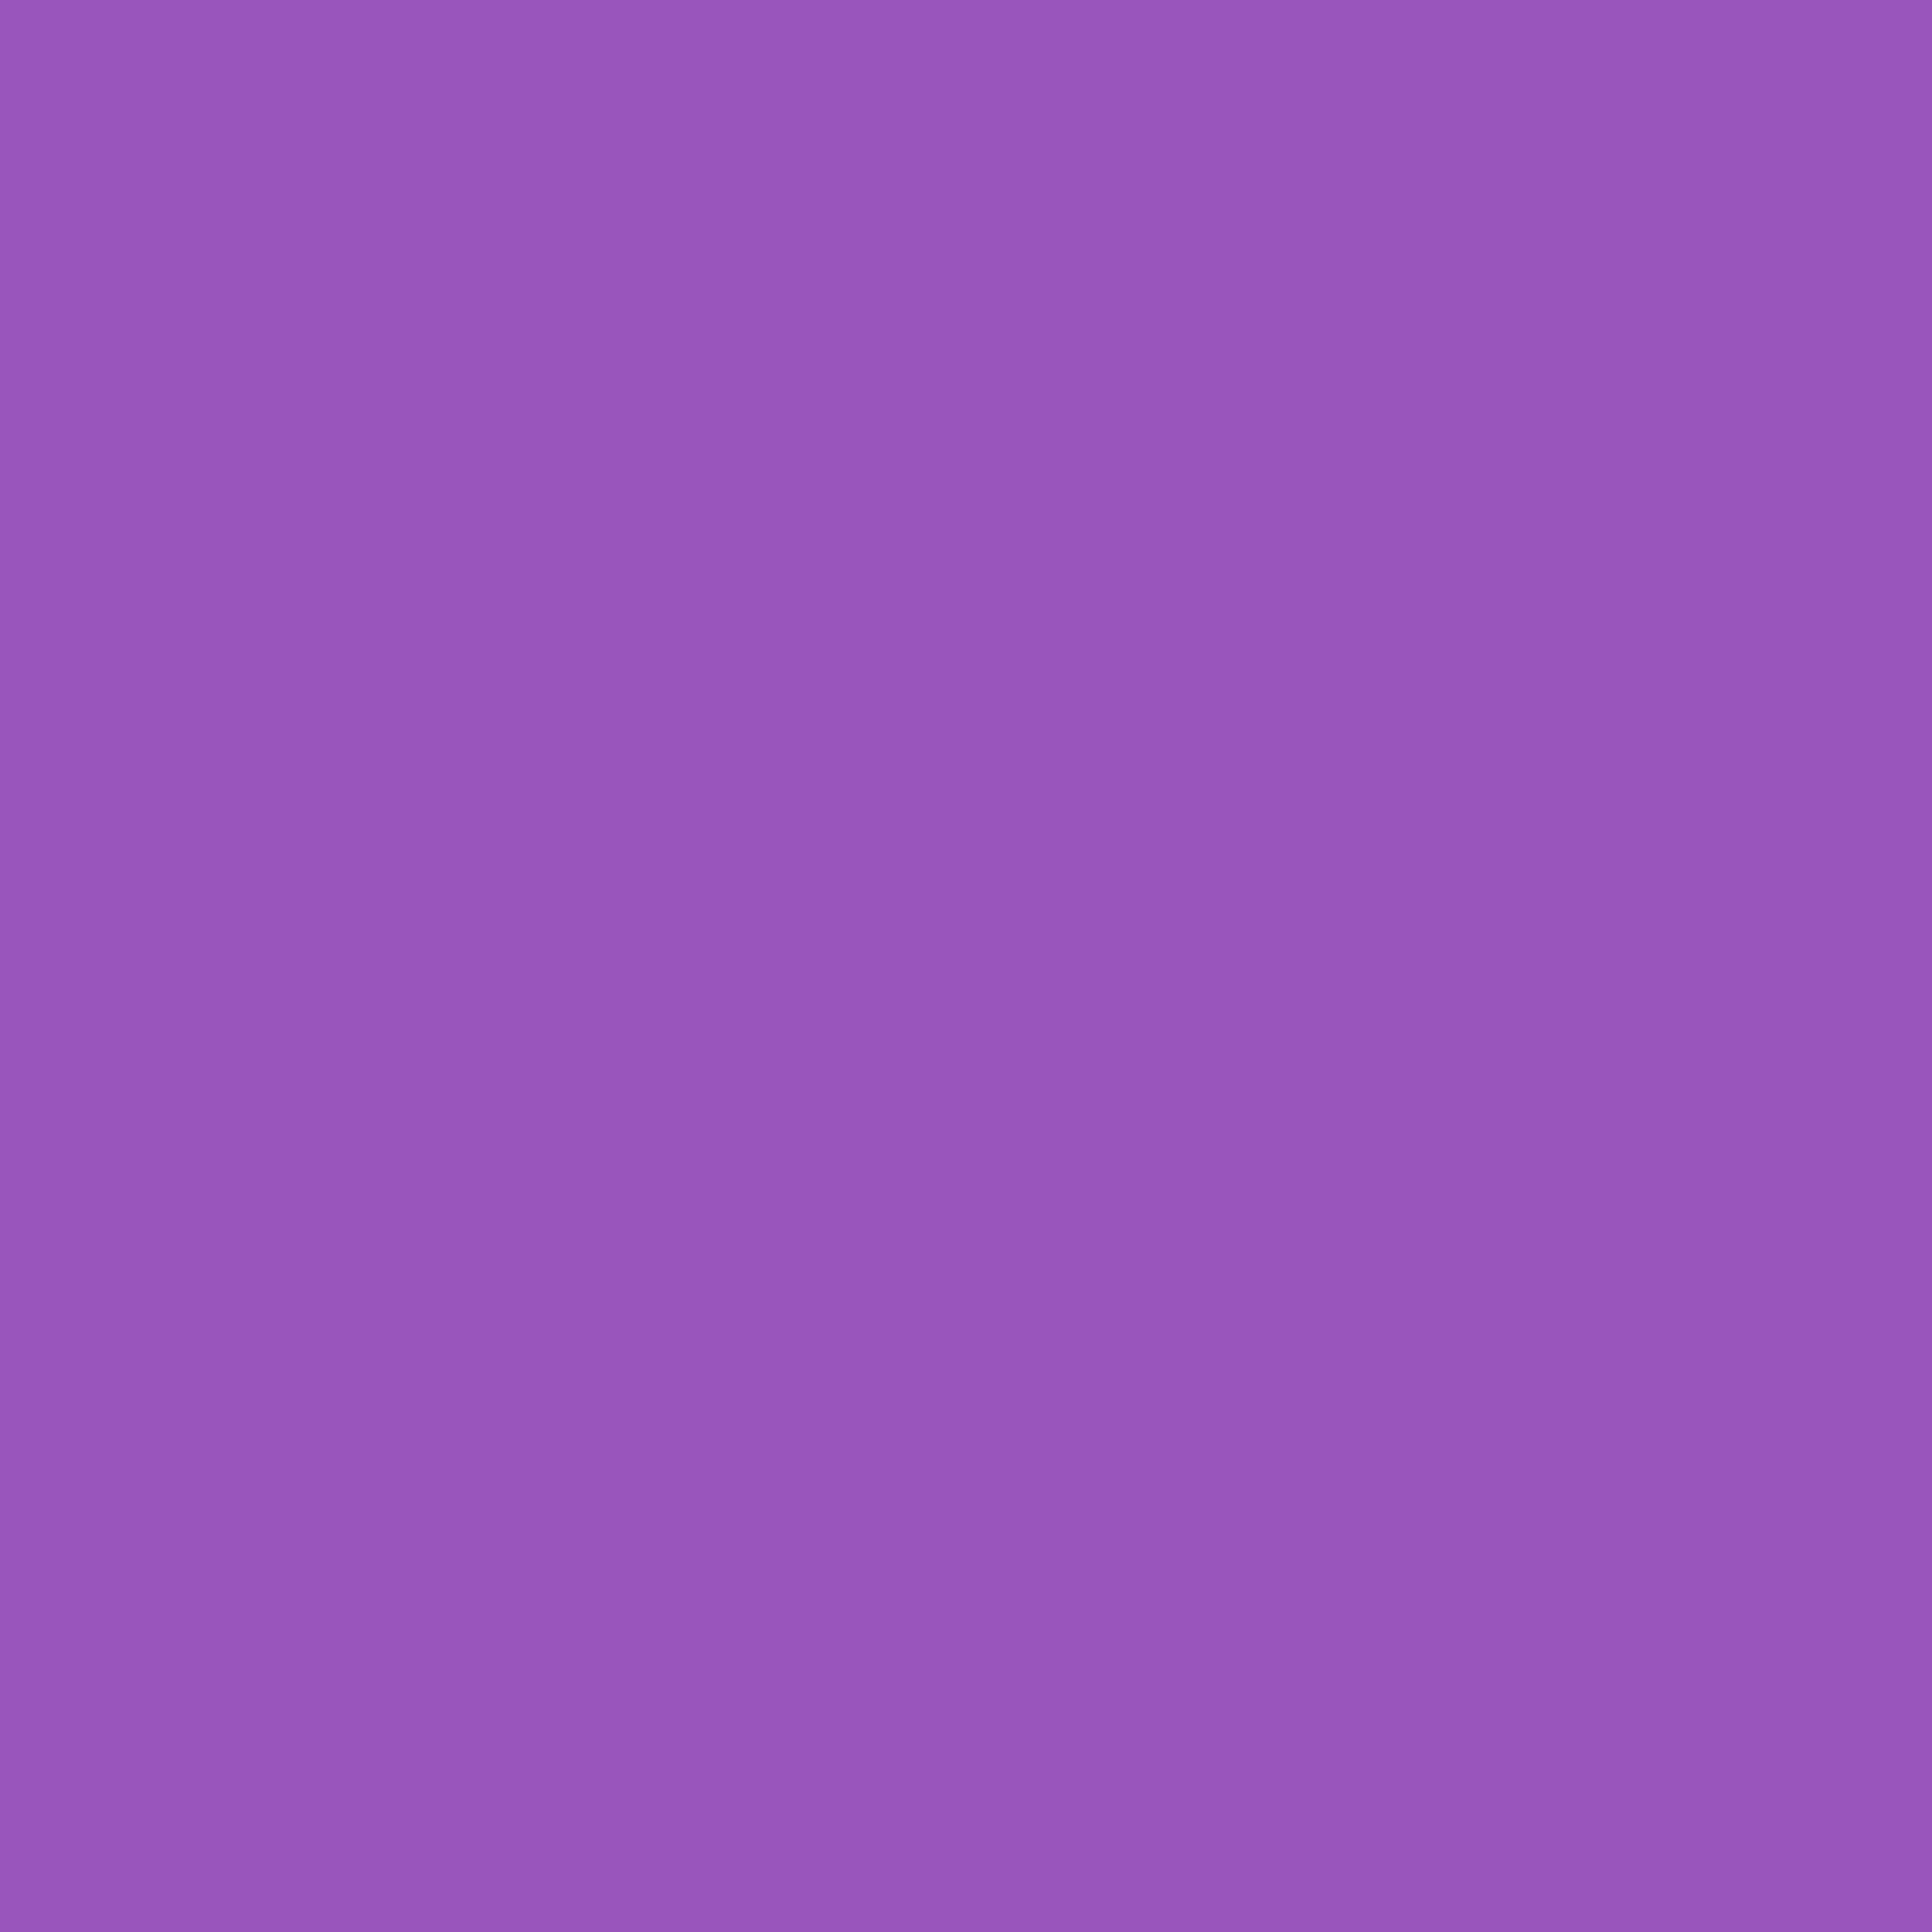 3600x3600 Deep Lilac Solid Color Background